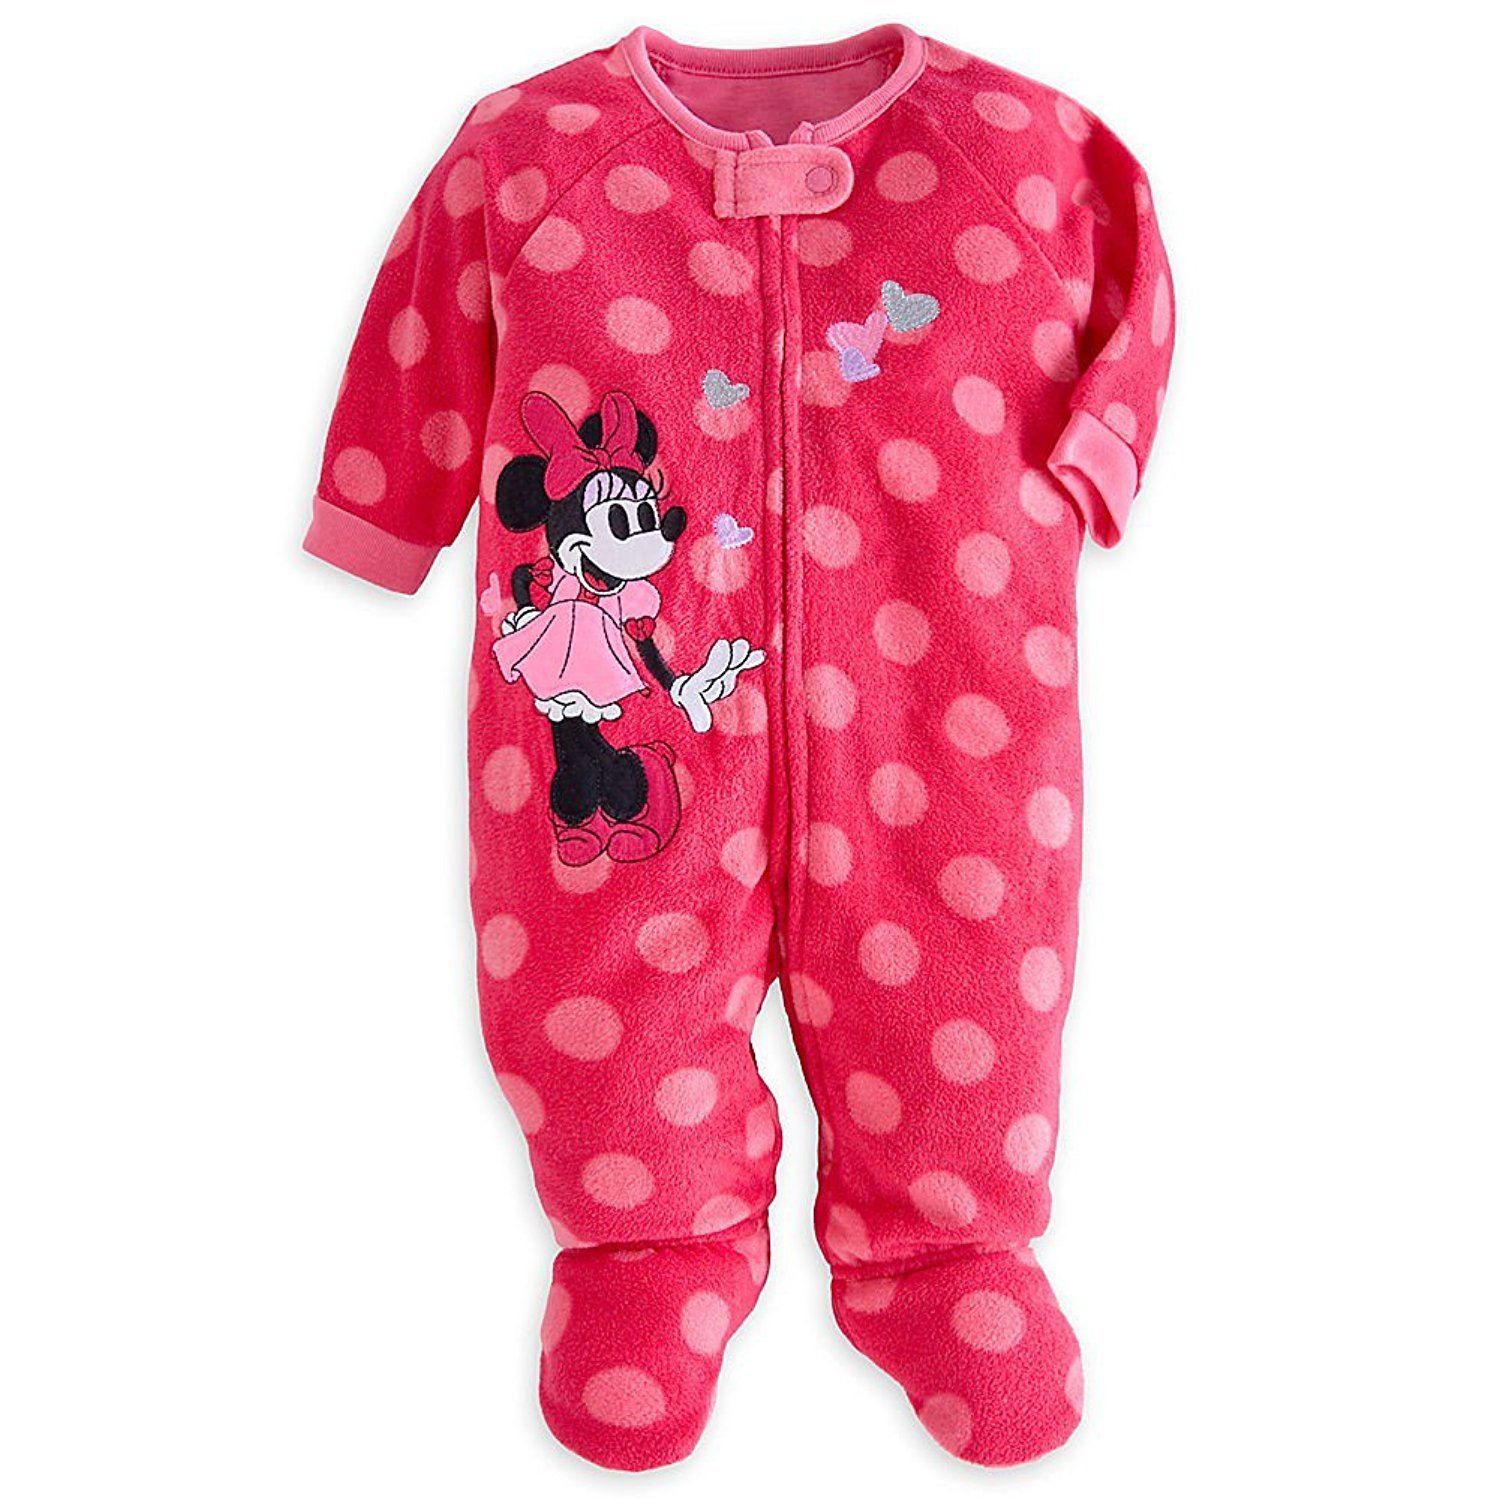 4678f9c53424 Amazon.com  Disney Store Minnie Mouse Pink Footed Blanket Sleeper ...